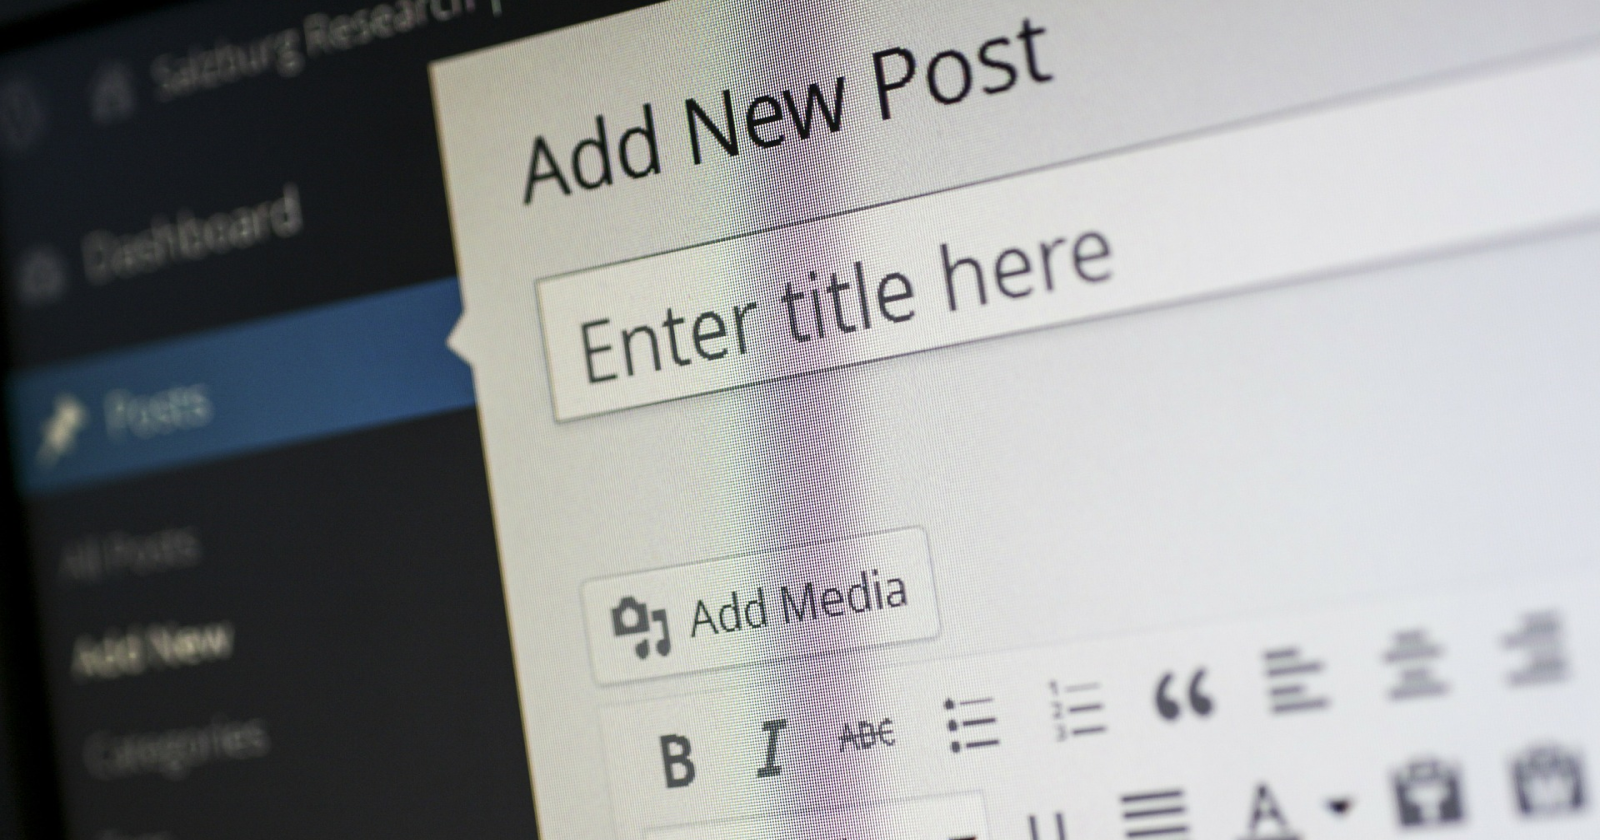 5 Takeaways You Can Learn From 1000 Bloggers to Improve Content